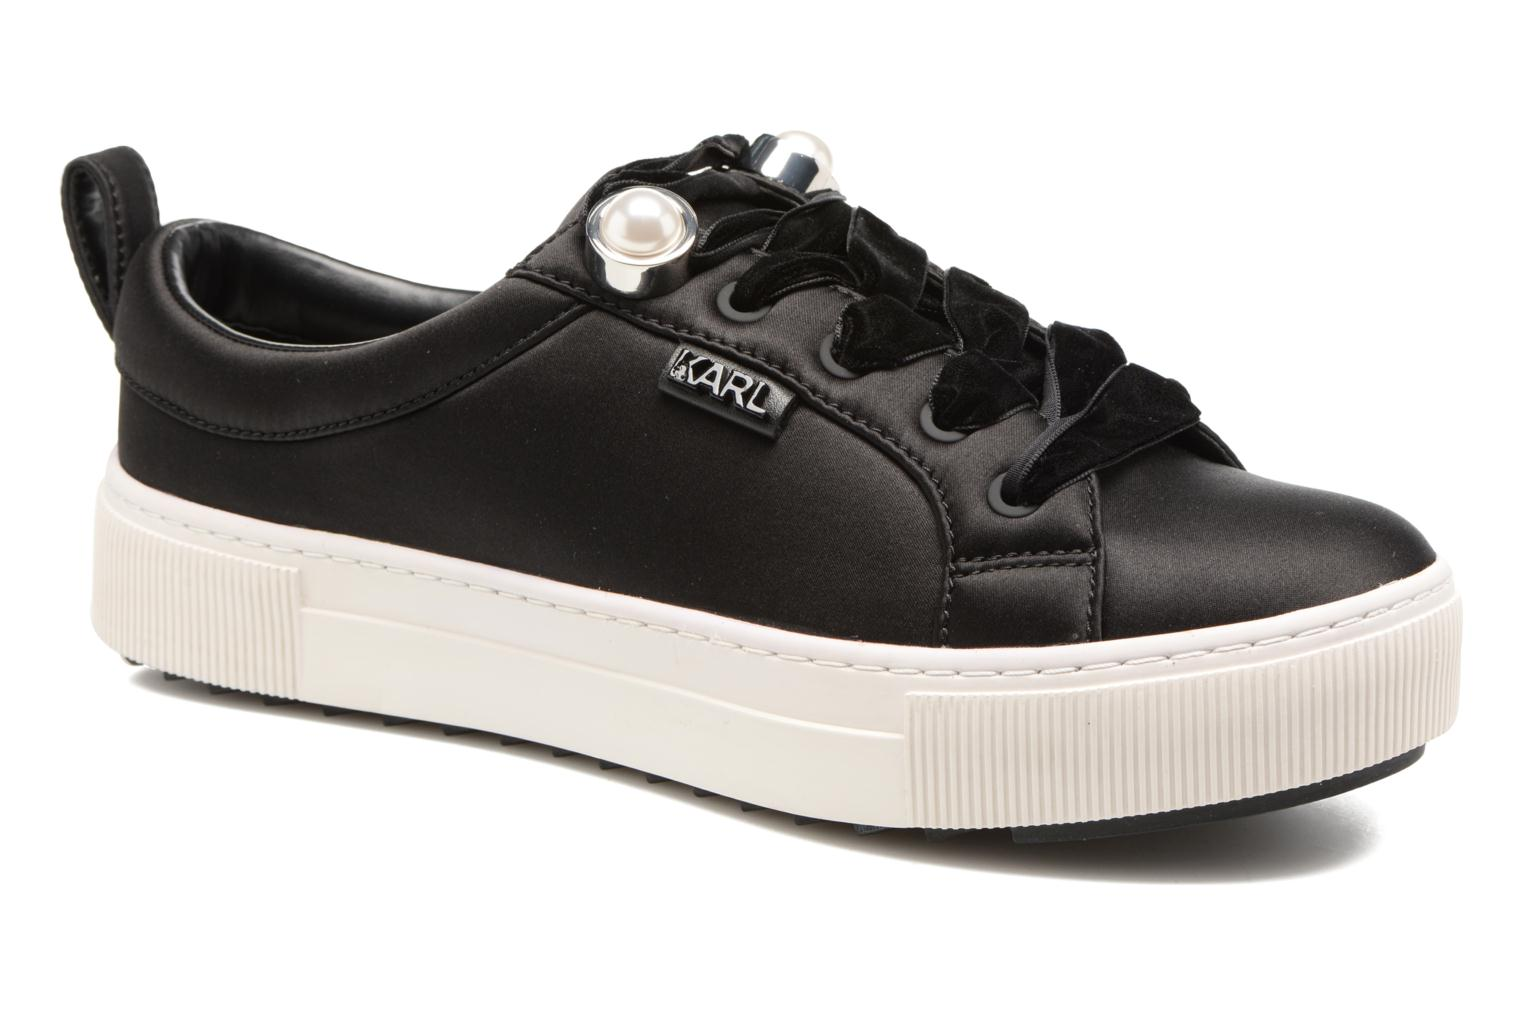 Luxor Kup Lace Shoe Black Satin